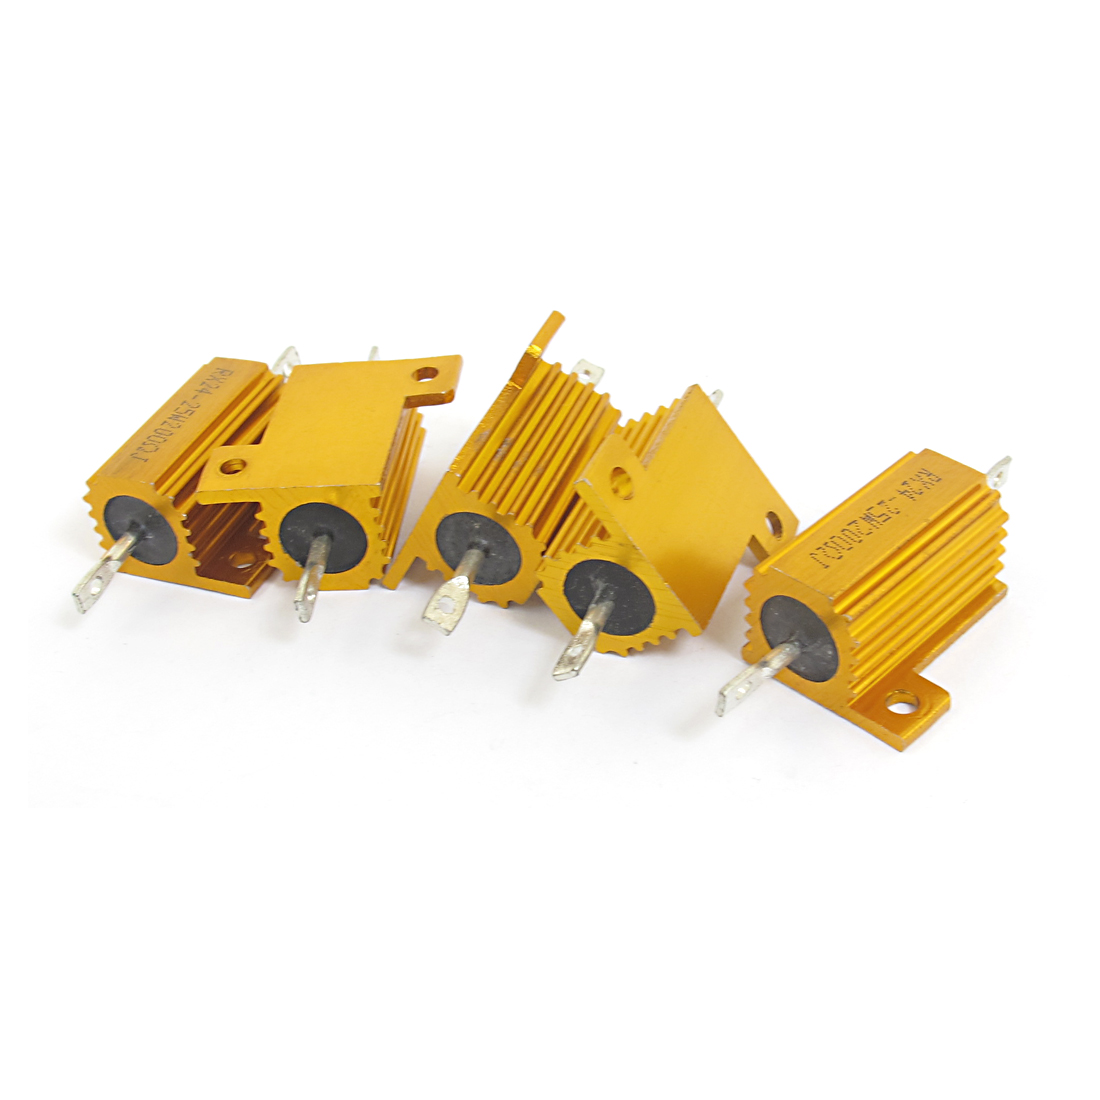 5pcs 25W 200 Ohm Resistance 5% Axial Yellow Chassis Mount Aluminum Clad Wirewound Power Resistor